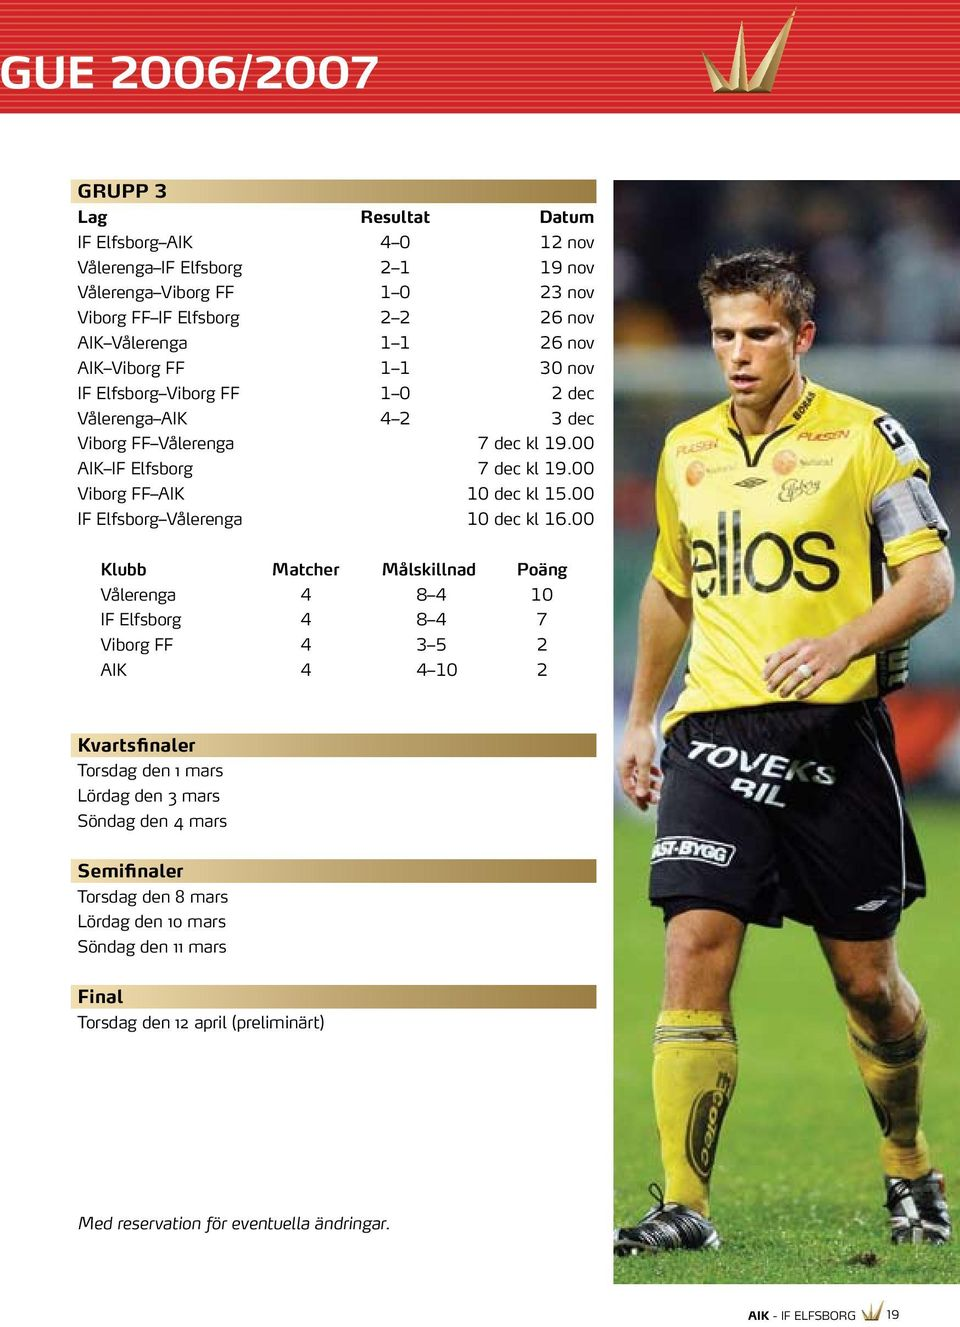 00 IF Elfsborg Vålerenga 10 dec kl 16.